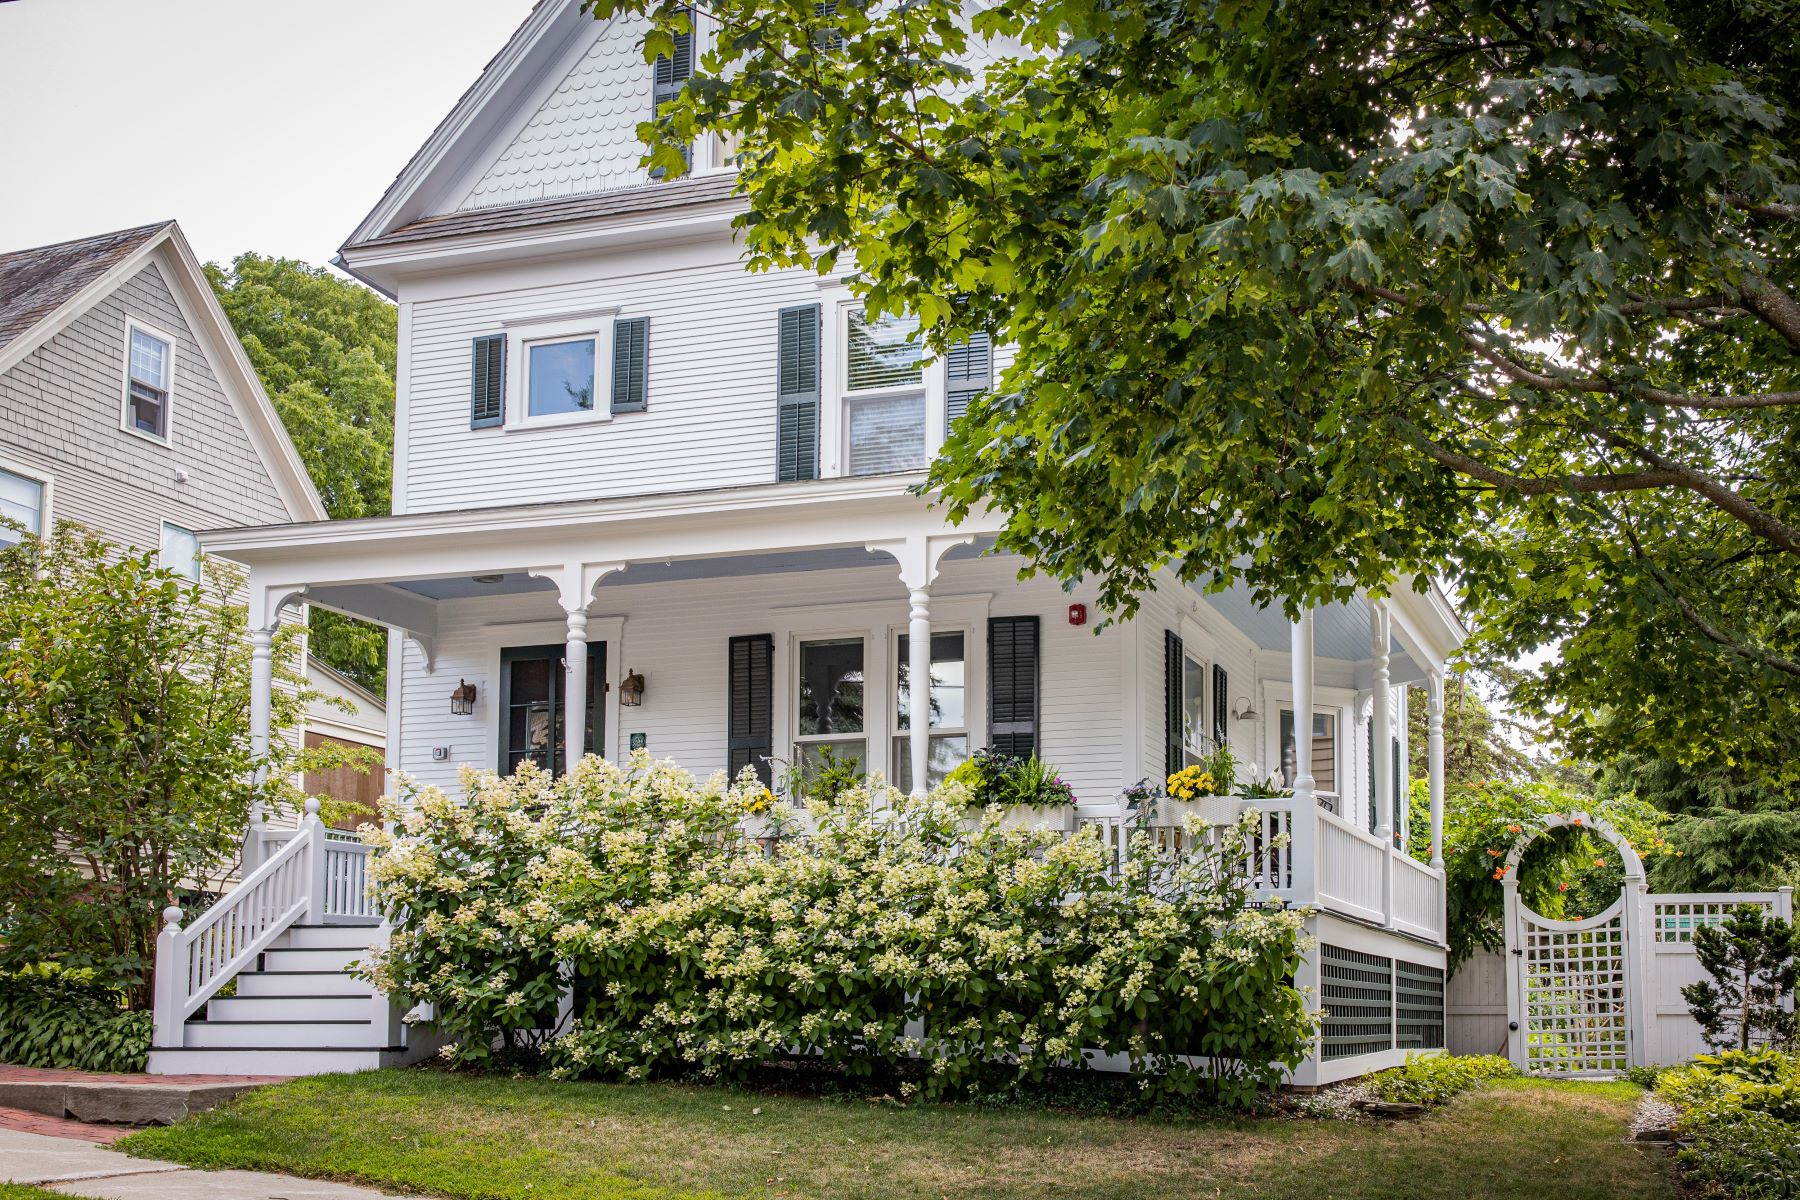 Single Family Homes for Sale at 25 Bayview Street, Burlington 25 Bayview St Burlington, Vermont 05401 United States